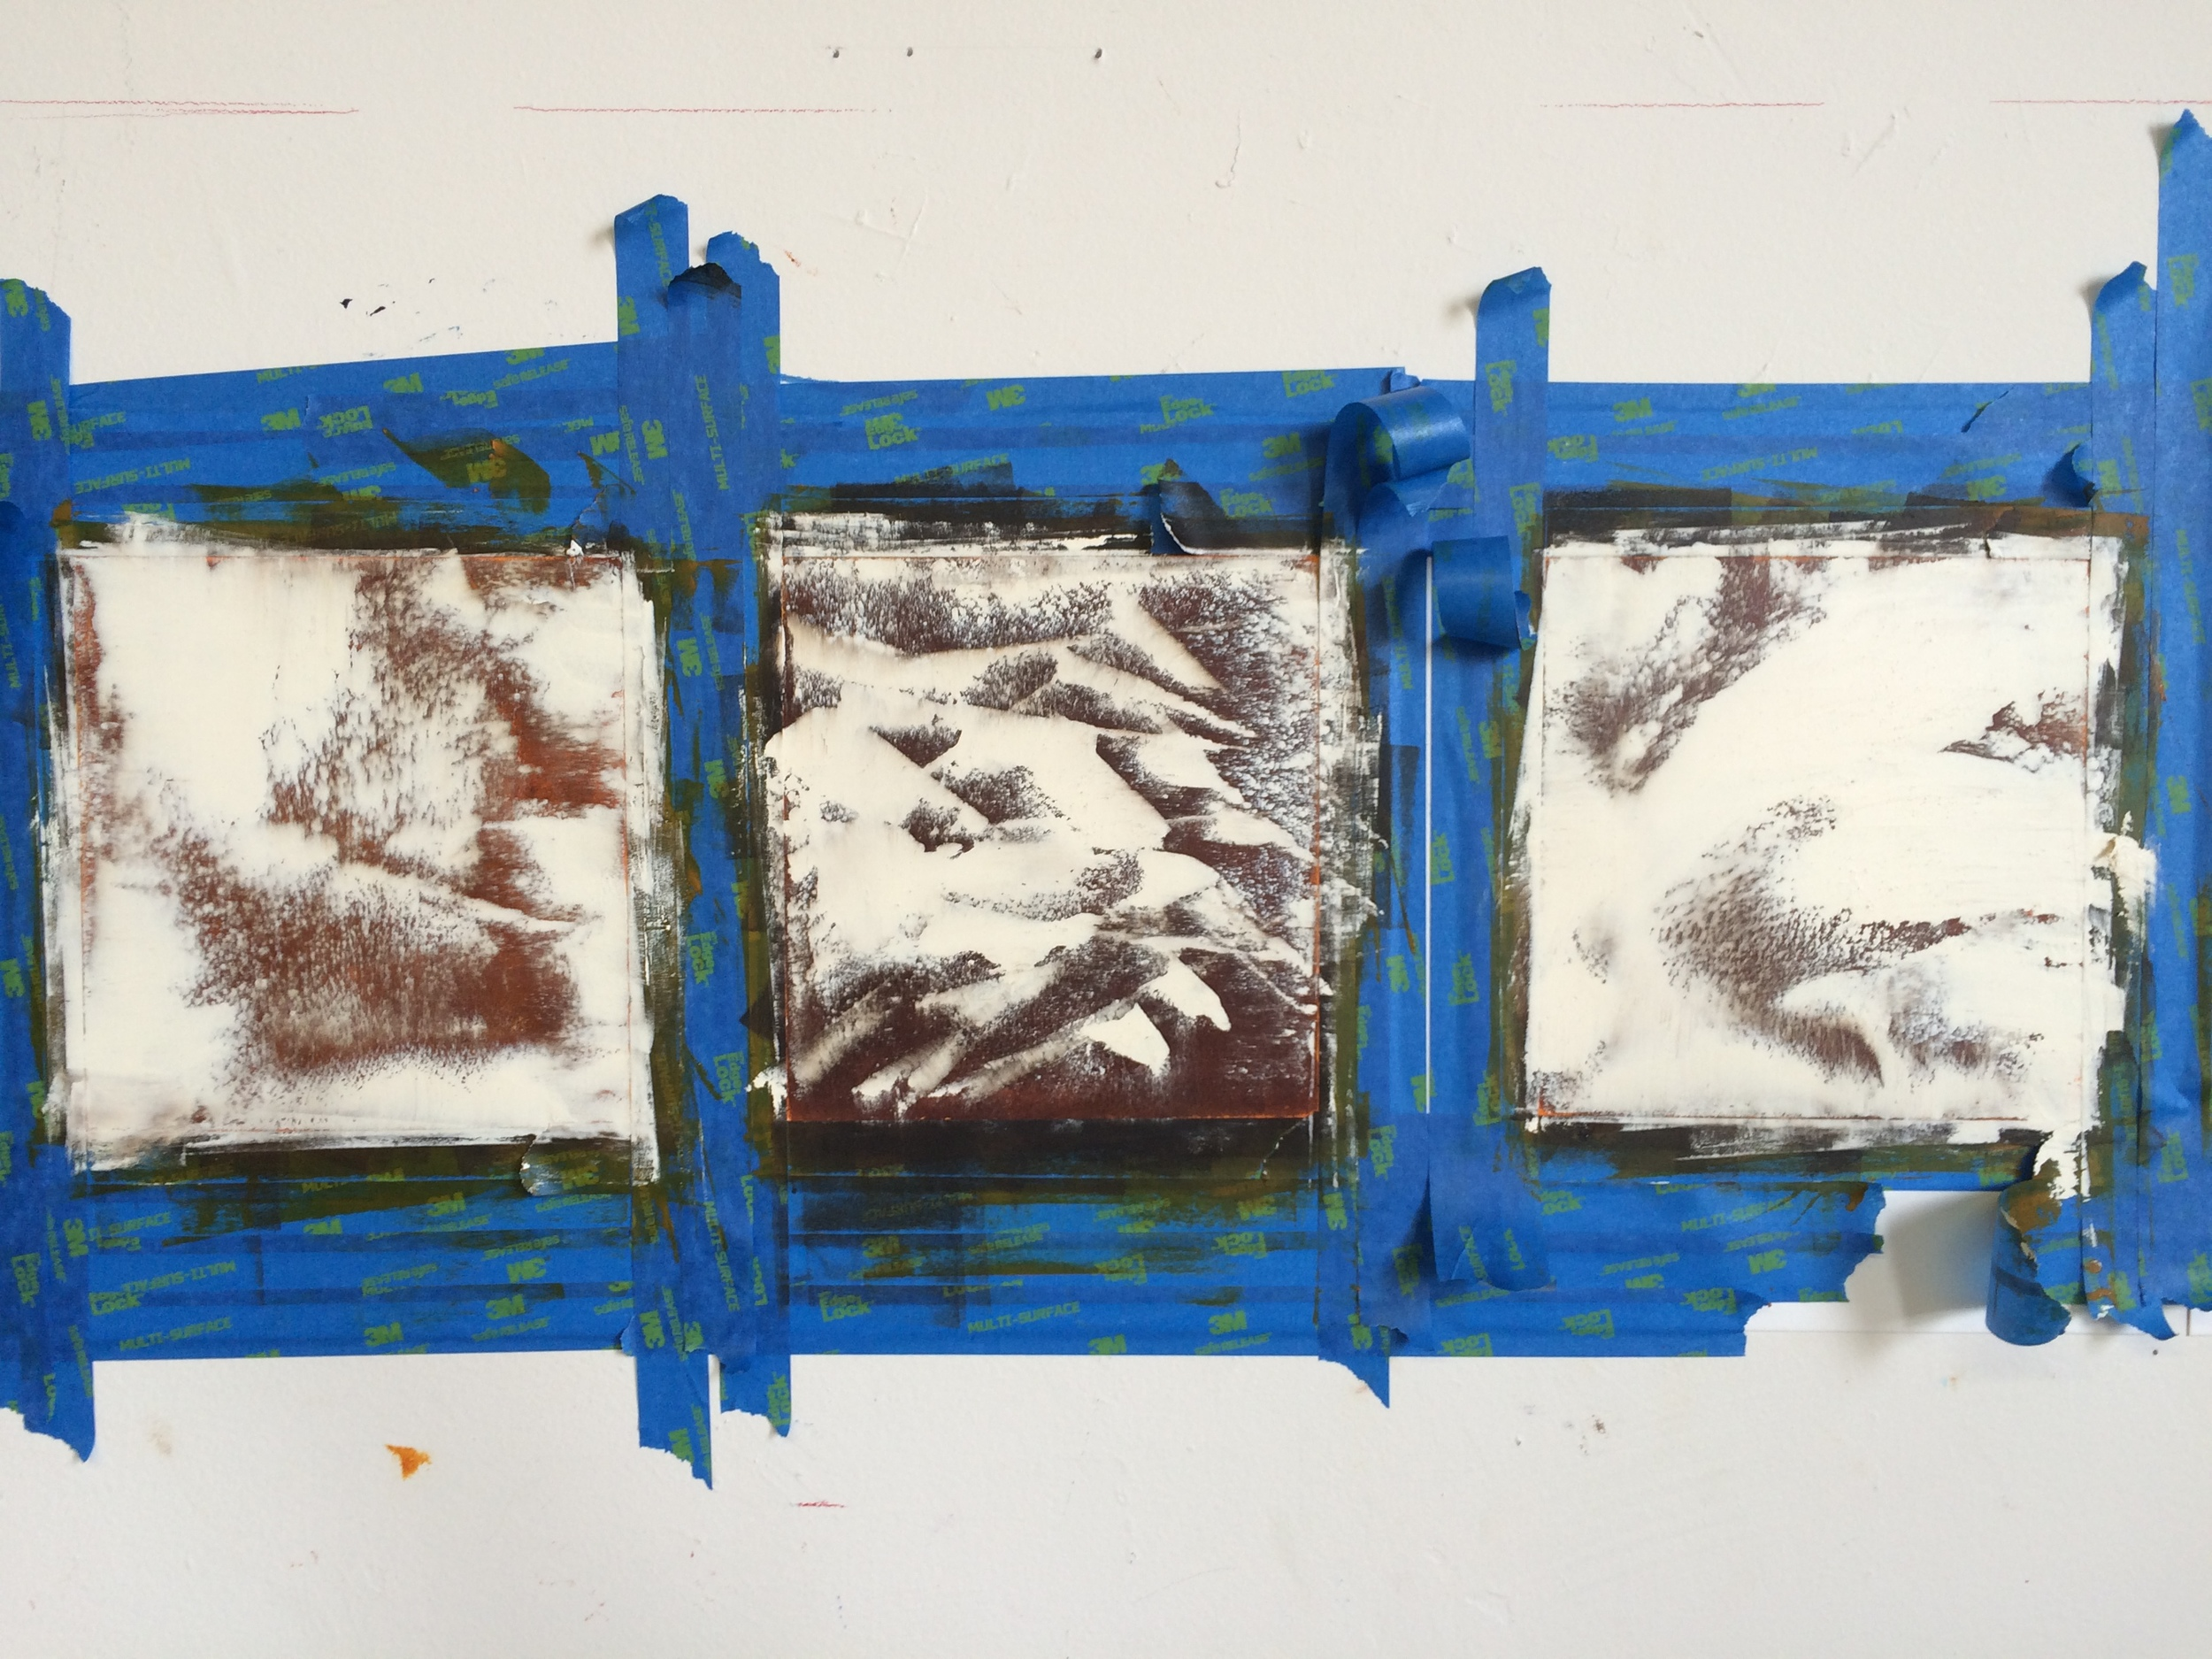 early layers of several paintings on paper